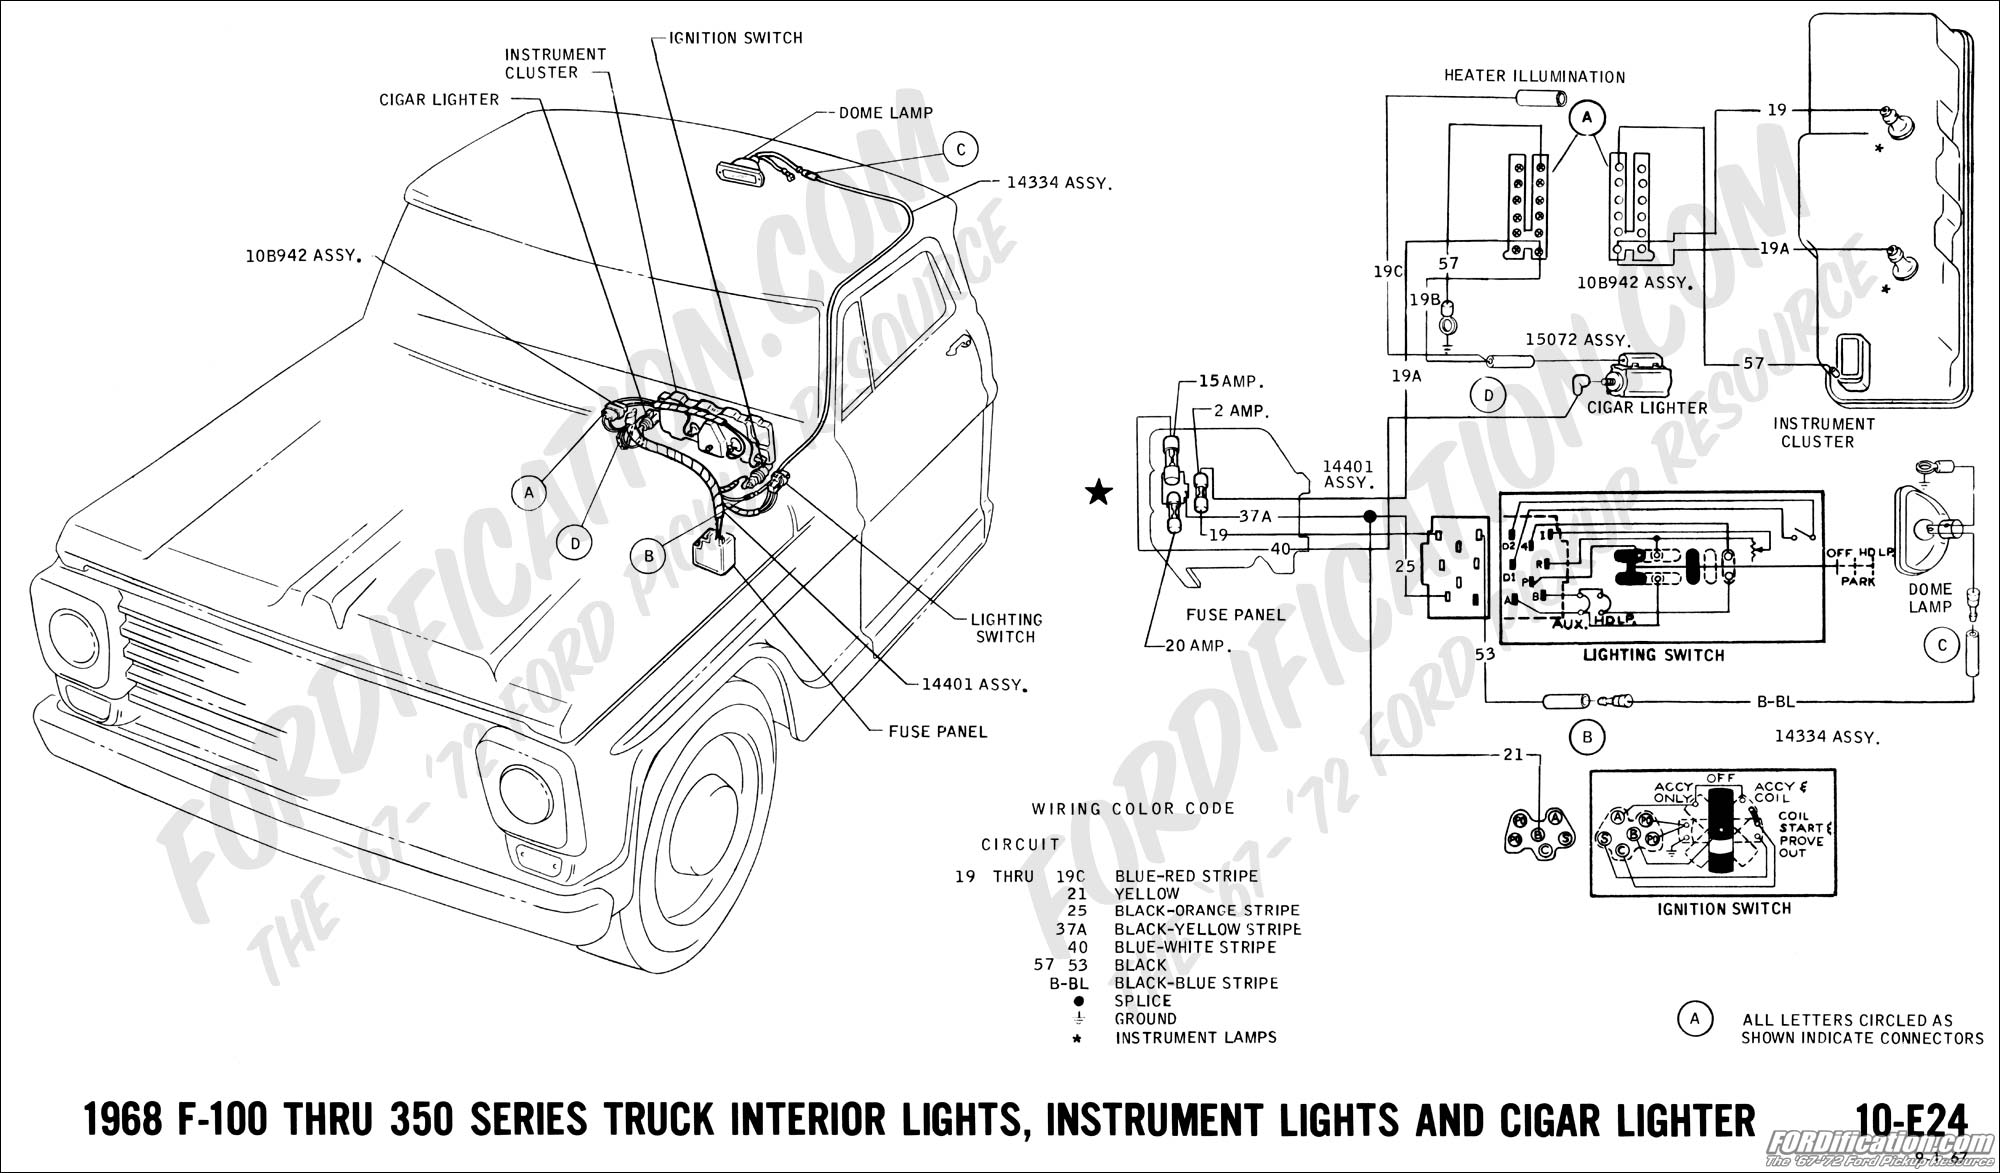 1968 f100 wiring diagram ac electric motor ford truck technical drawings and schematics section h